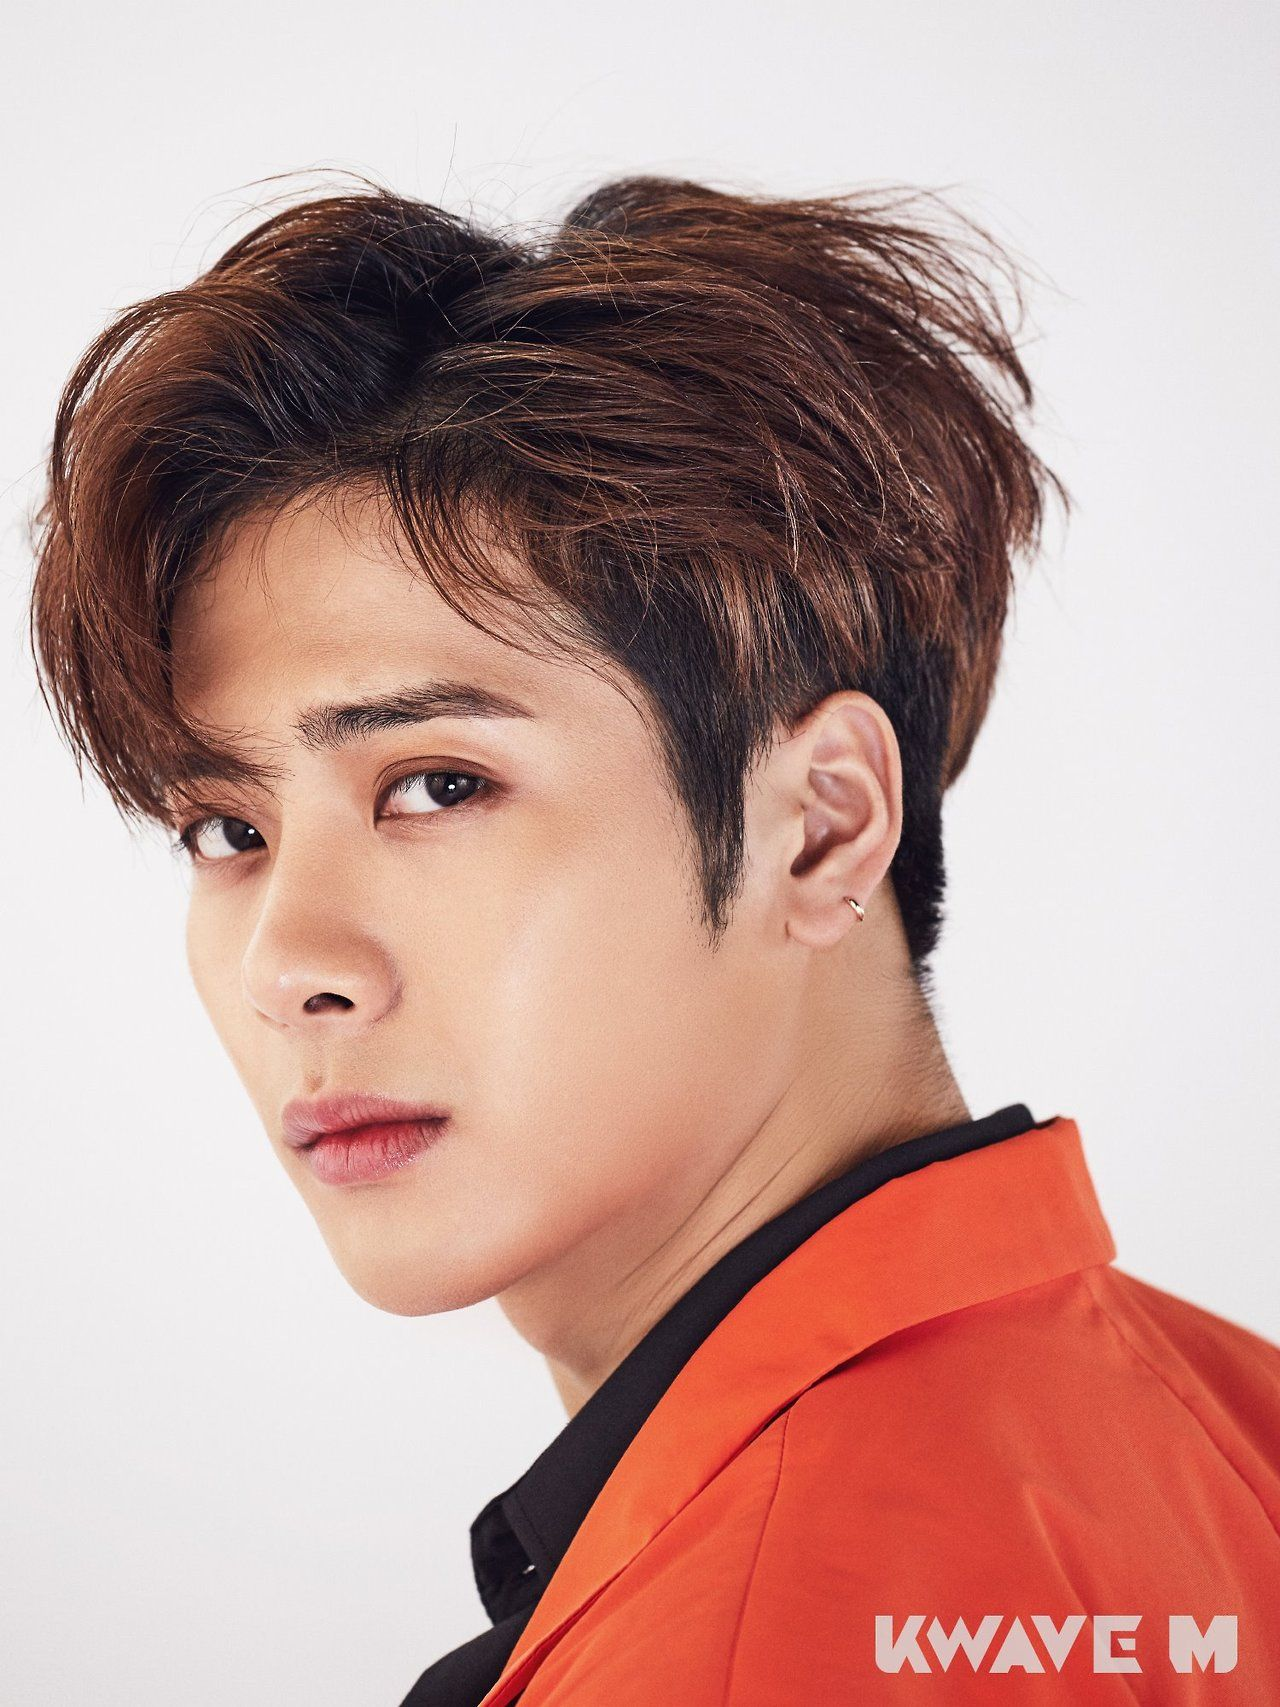 Jackson Got7 Kwave Magazine March Issue 17 Got7